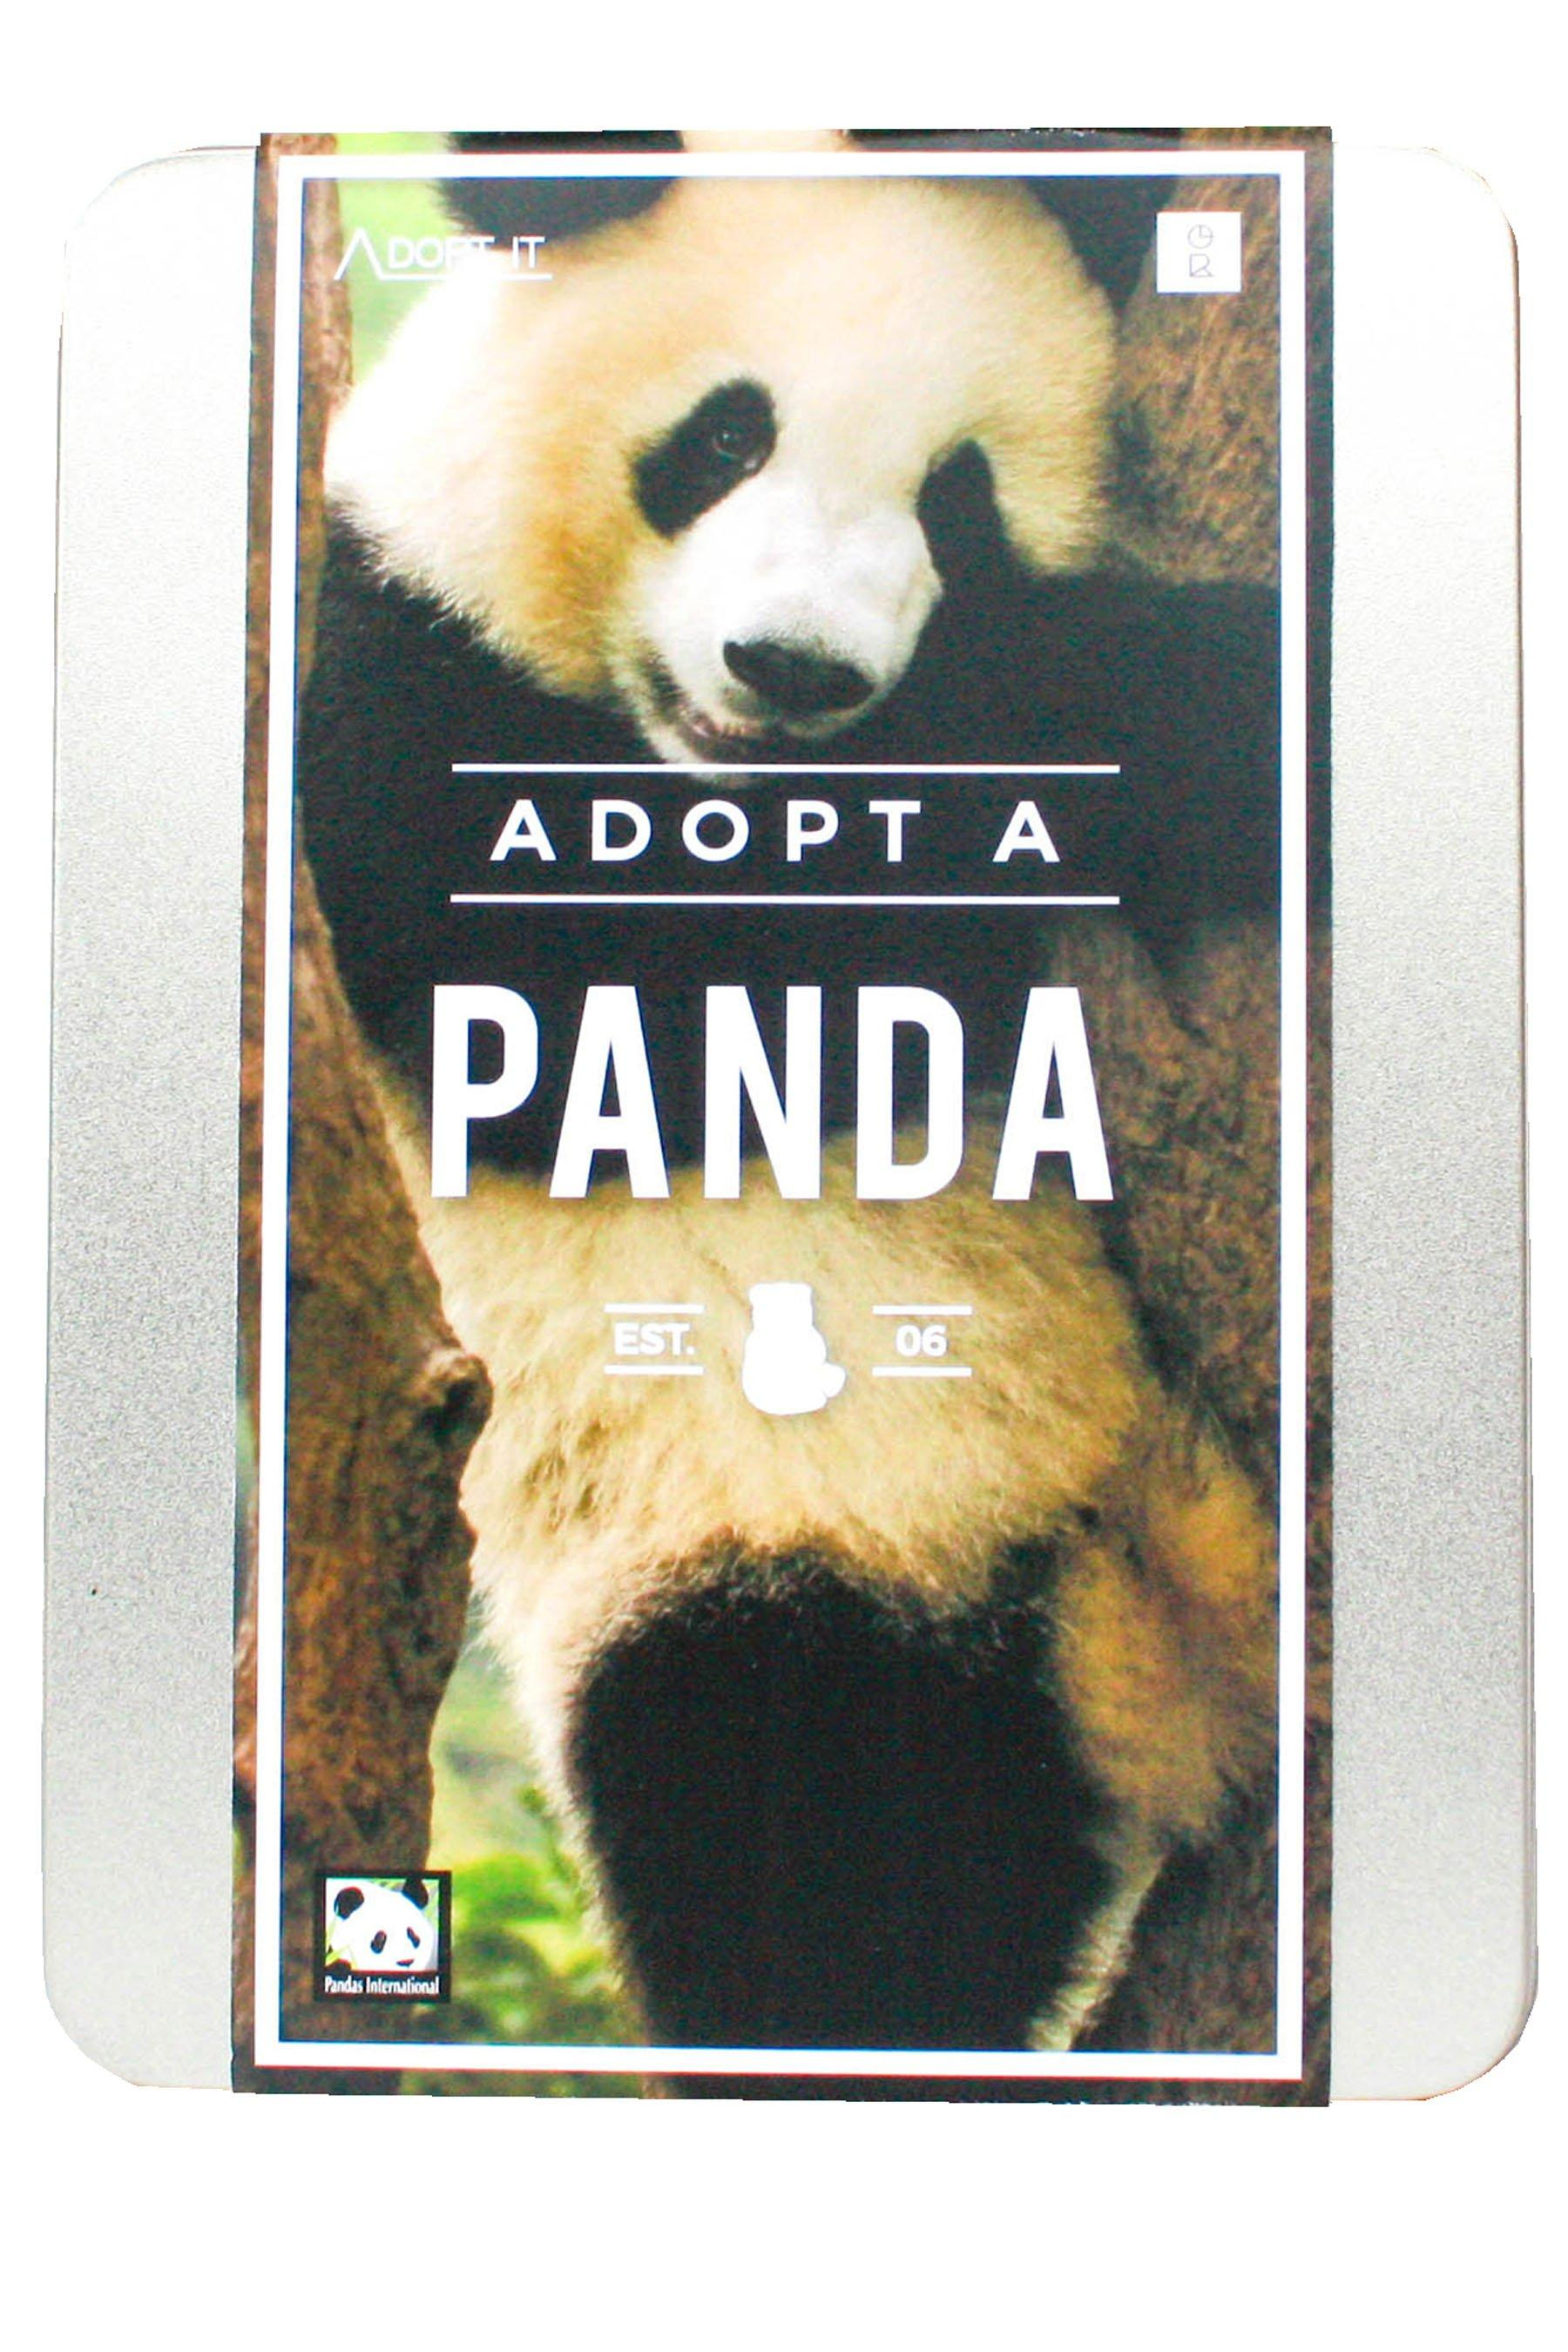 Compare retail prices of Adopt It - Adopt a Panda to get the best deal online